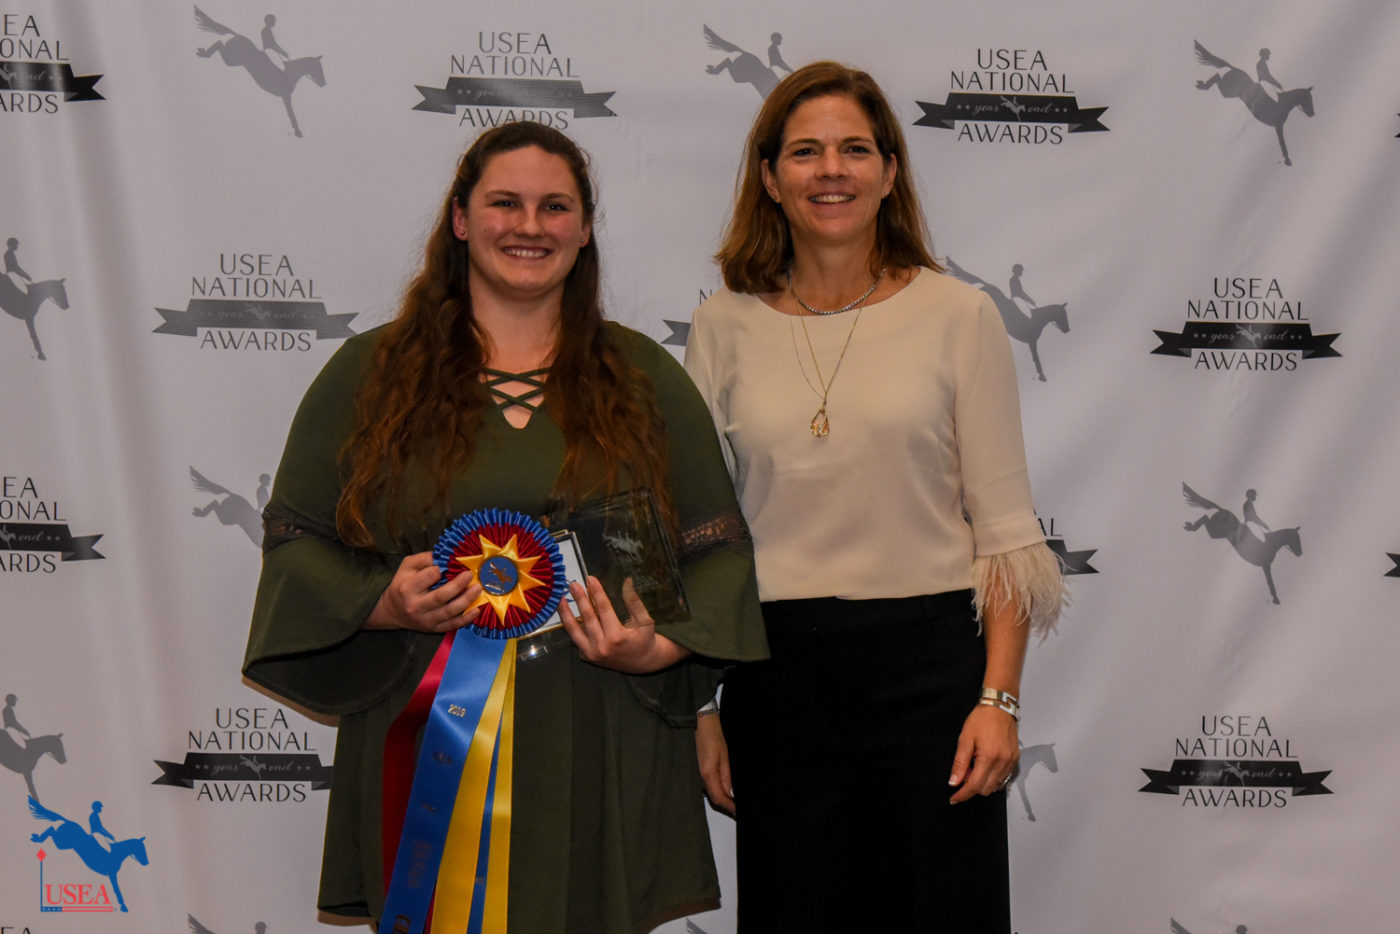 Beginner Novice Young Adult Rider and Beginner Novice Intercollegiate Rider, Keileigh McMurray.